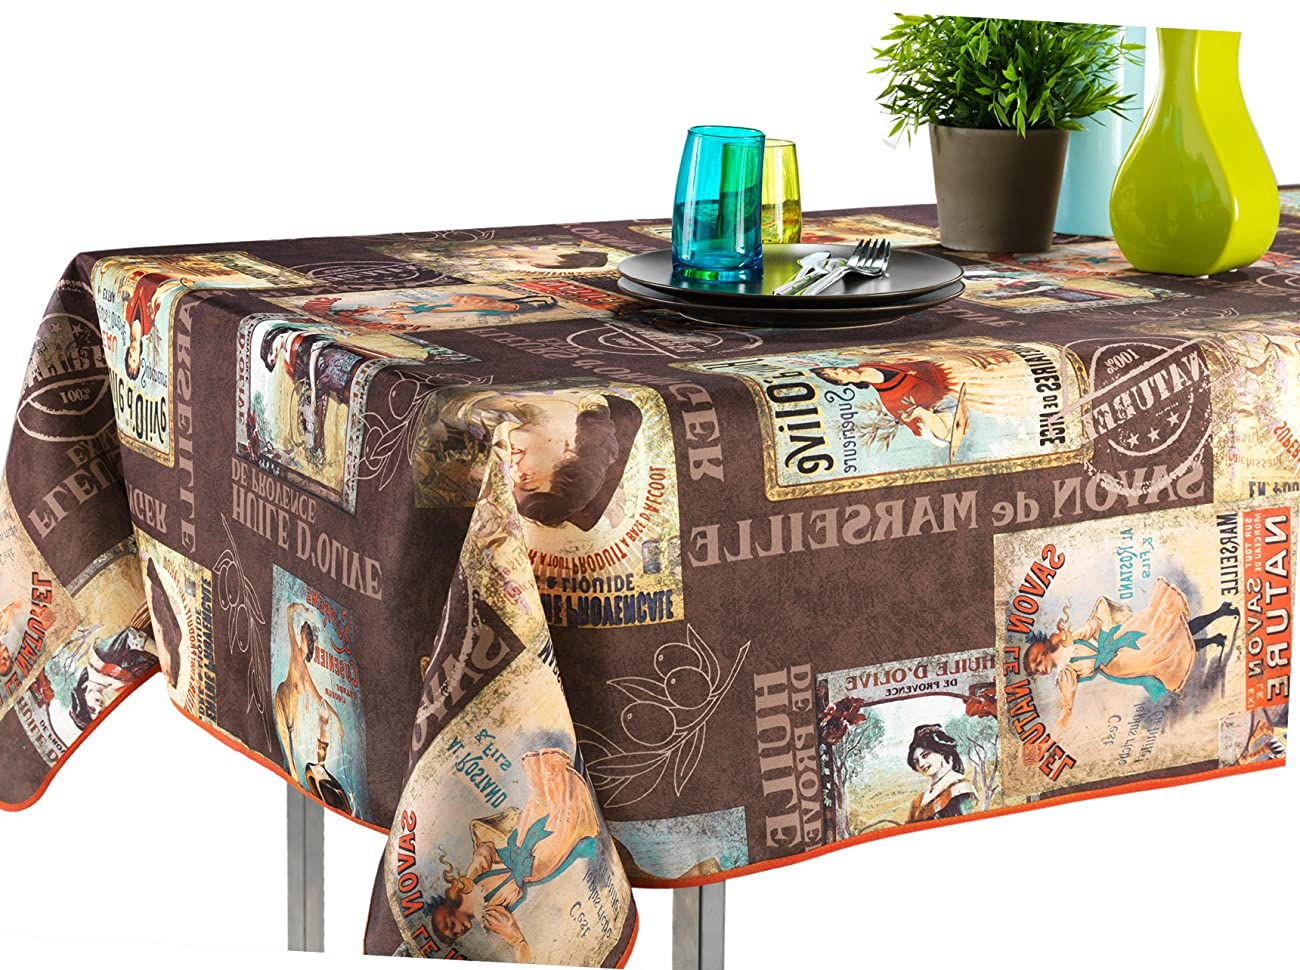 60 x 120-Inch Rectangular Tablecloth Brown Vintage Provence Cabaret, Stain Resistant, Washable, Liquid Spills bead up, Seats 10 to 12 People (Other Size Available: 63